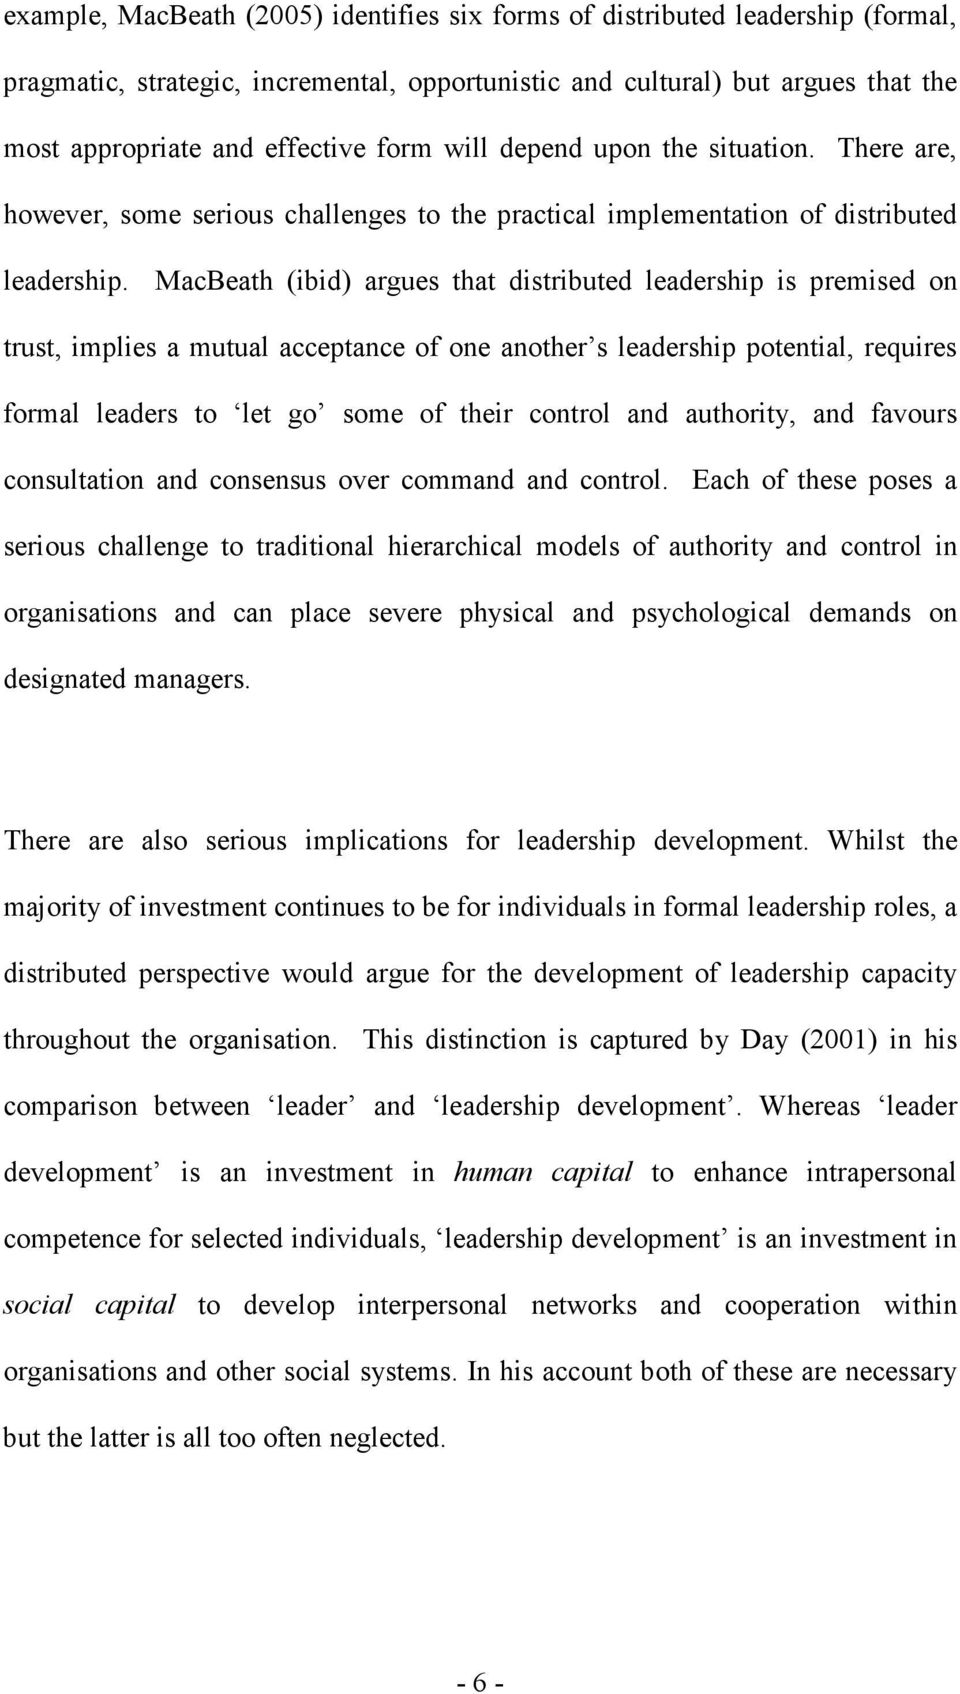 MacBeath (ibid) argues that distributed leadership is premised on trust, implies a mutual acceptance of one another s leadership potential, requires formal leaders to let go some of their control and